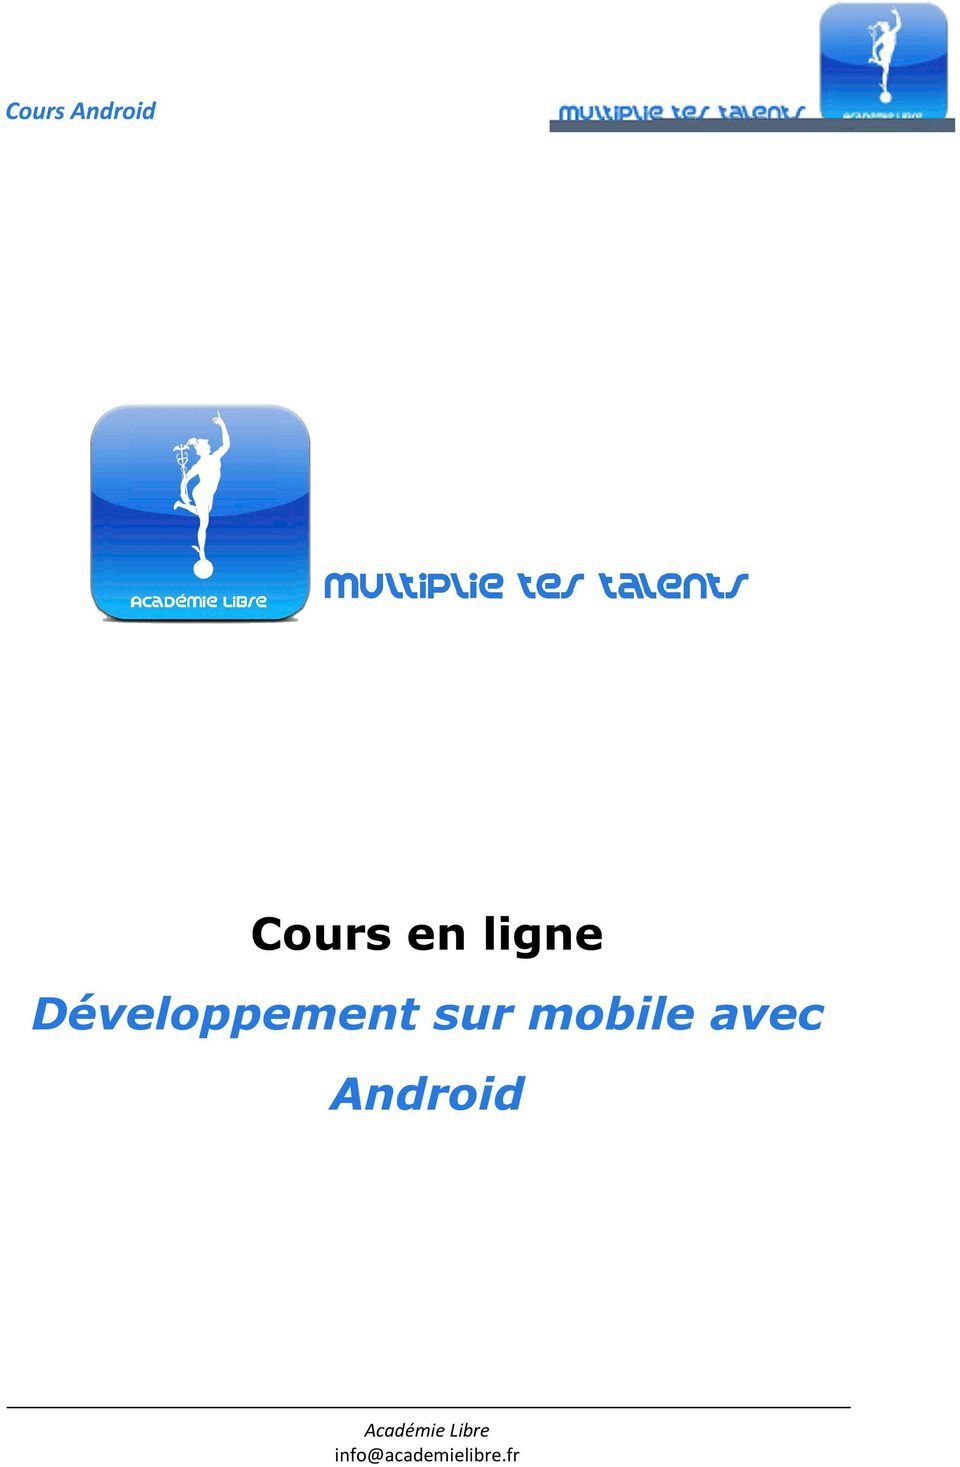 mobile avec Android